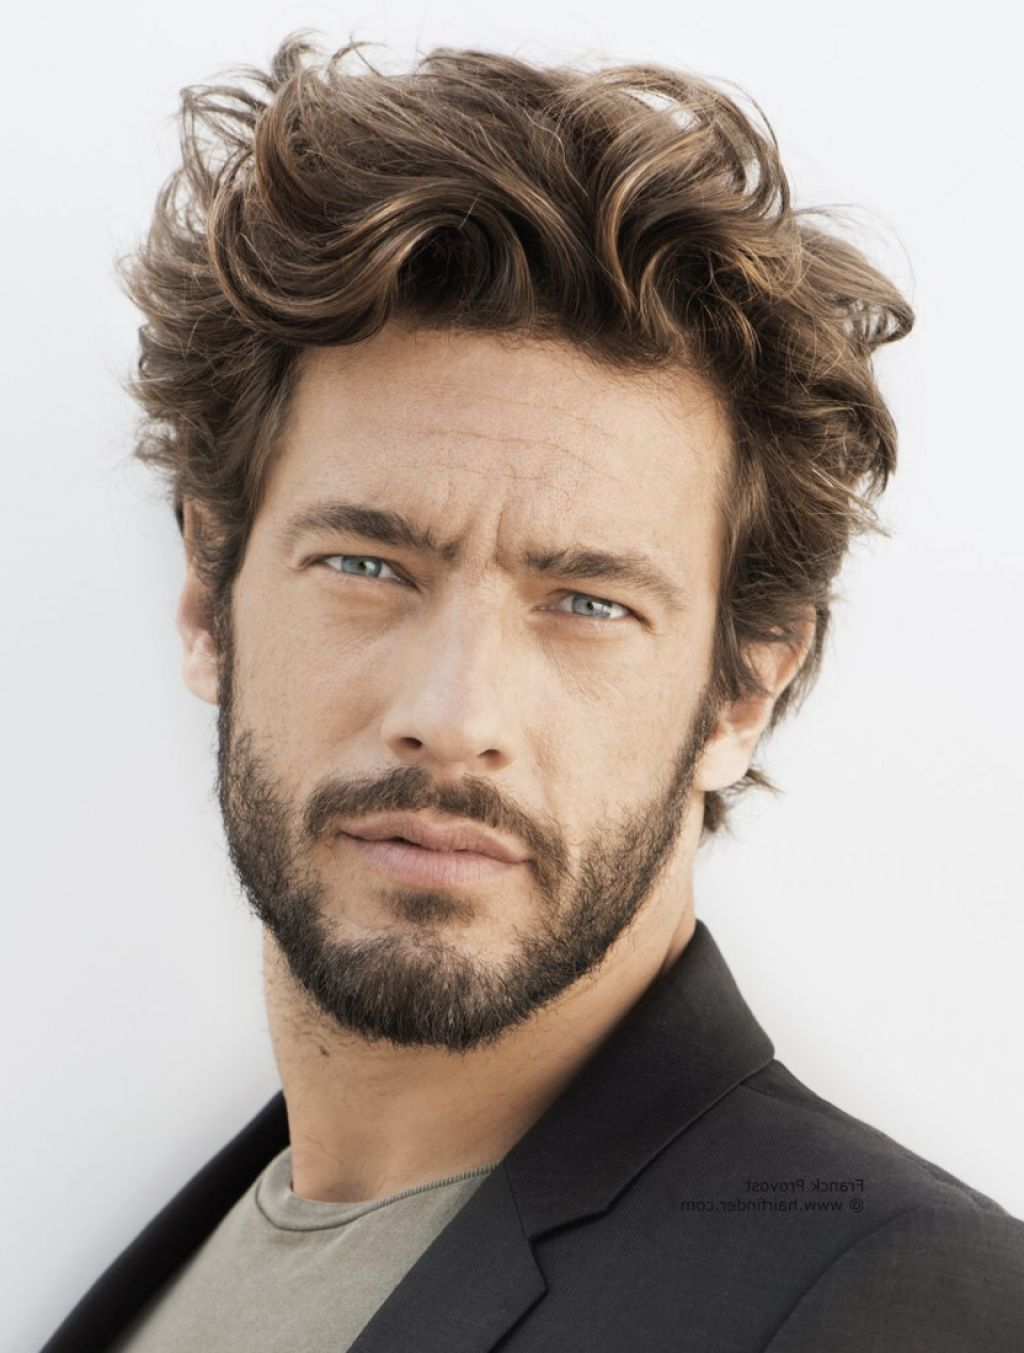 Tremendous Men Curly Hairstyles Business Men And Curly Hair On Pinterest Hairstyle Inspiration Daily Dogsangcom